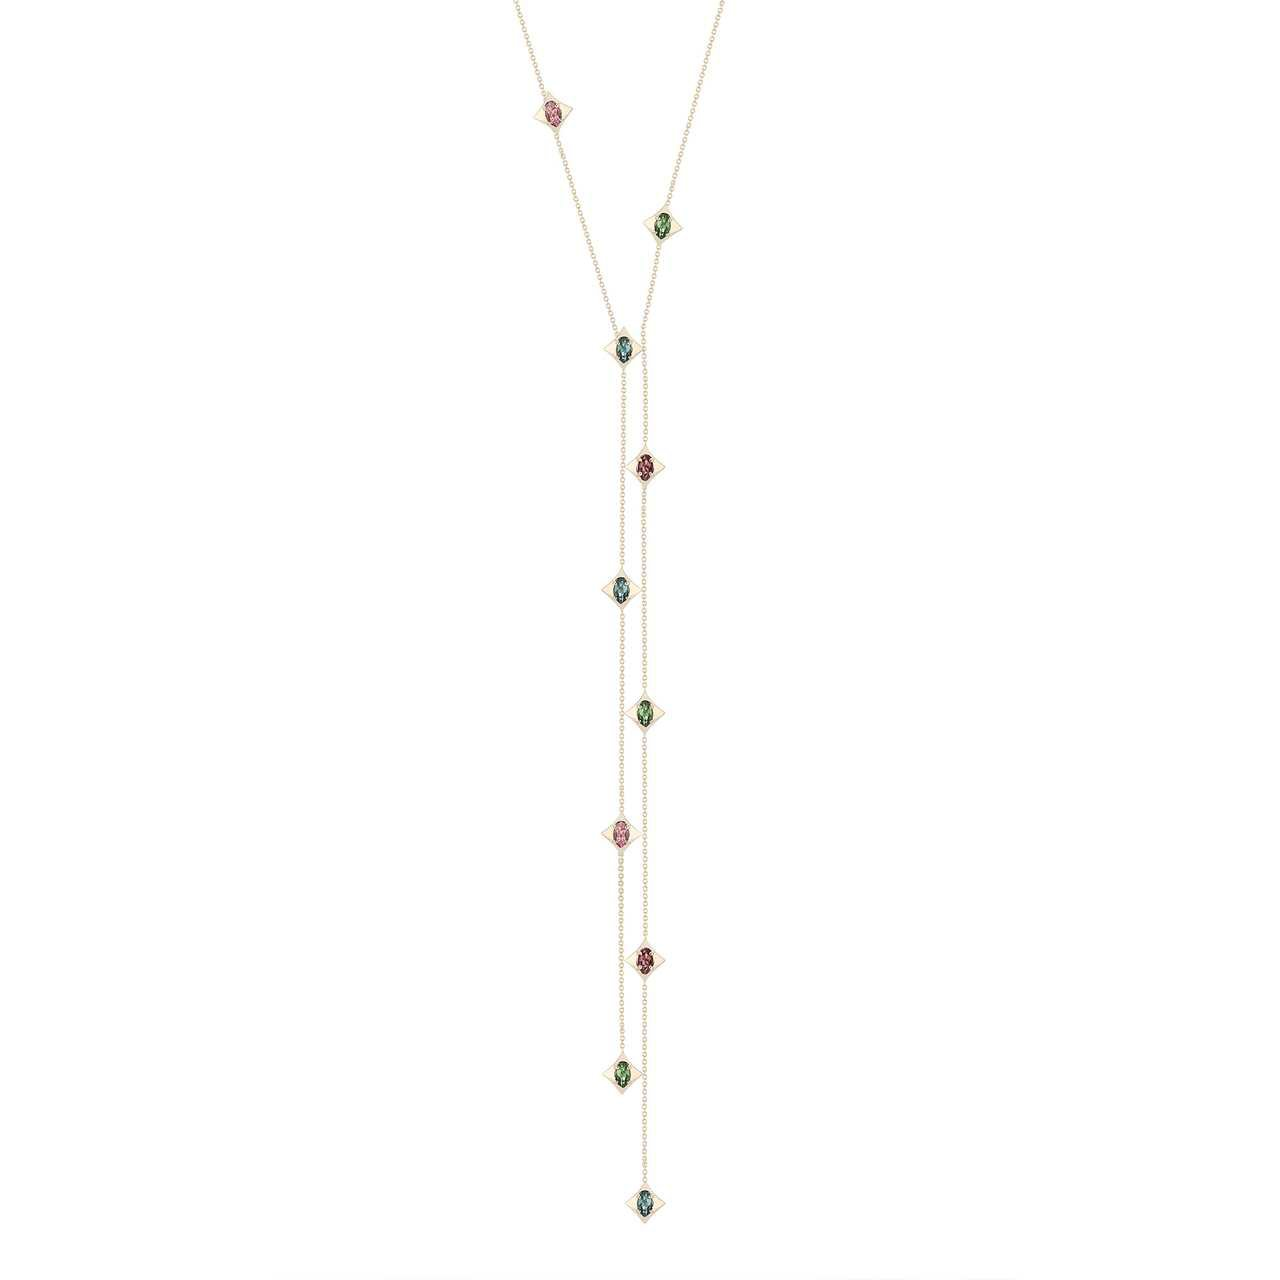 Regalo Necktie Necklace with Tourmaline in 14k Yellow Gold by GiGi Ferranti